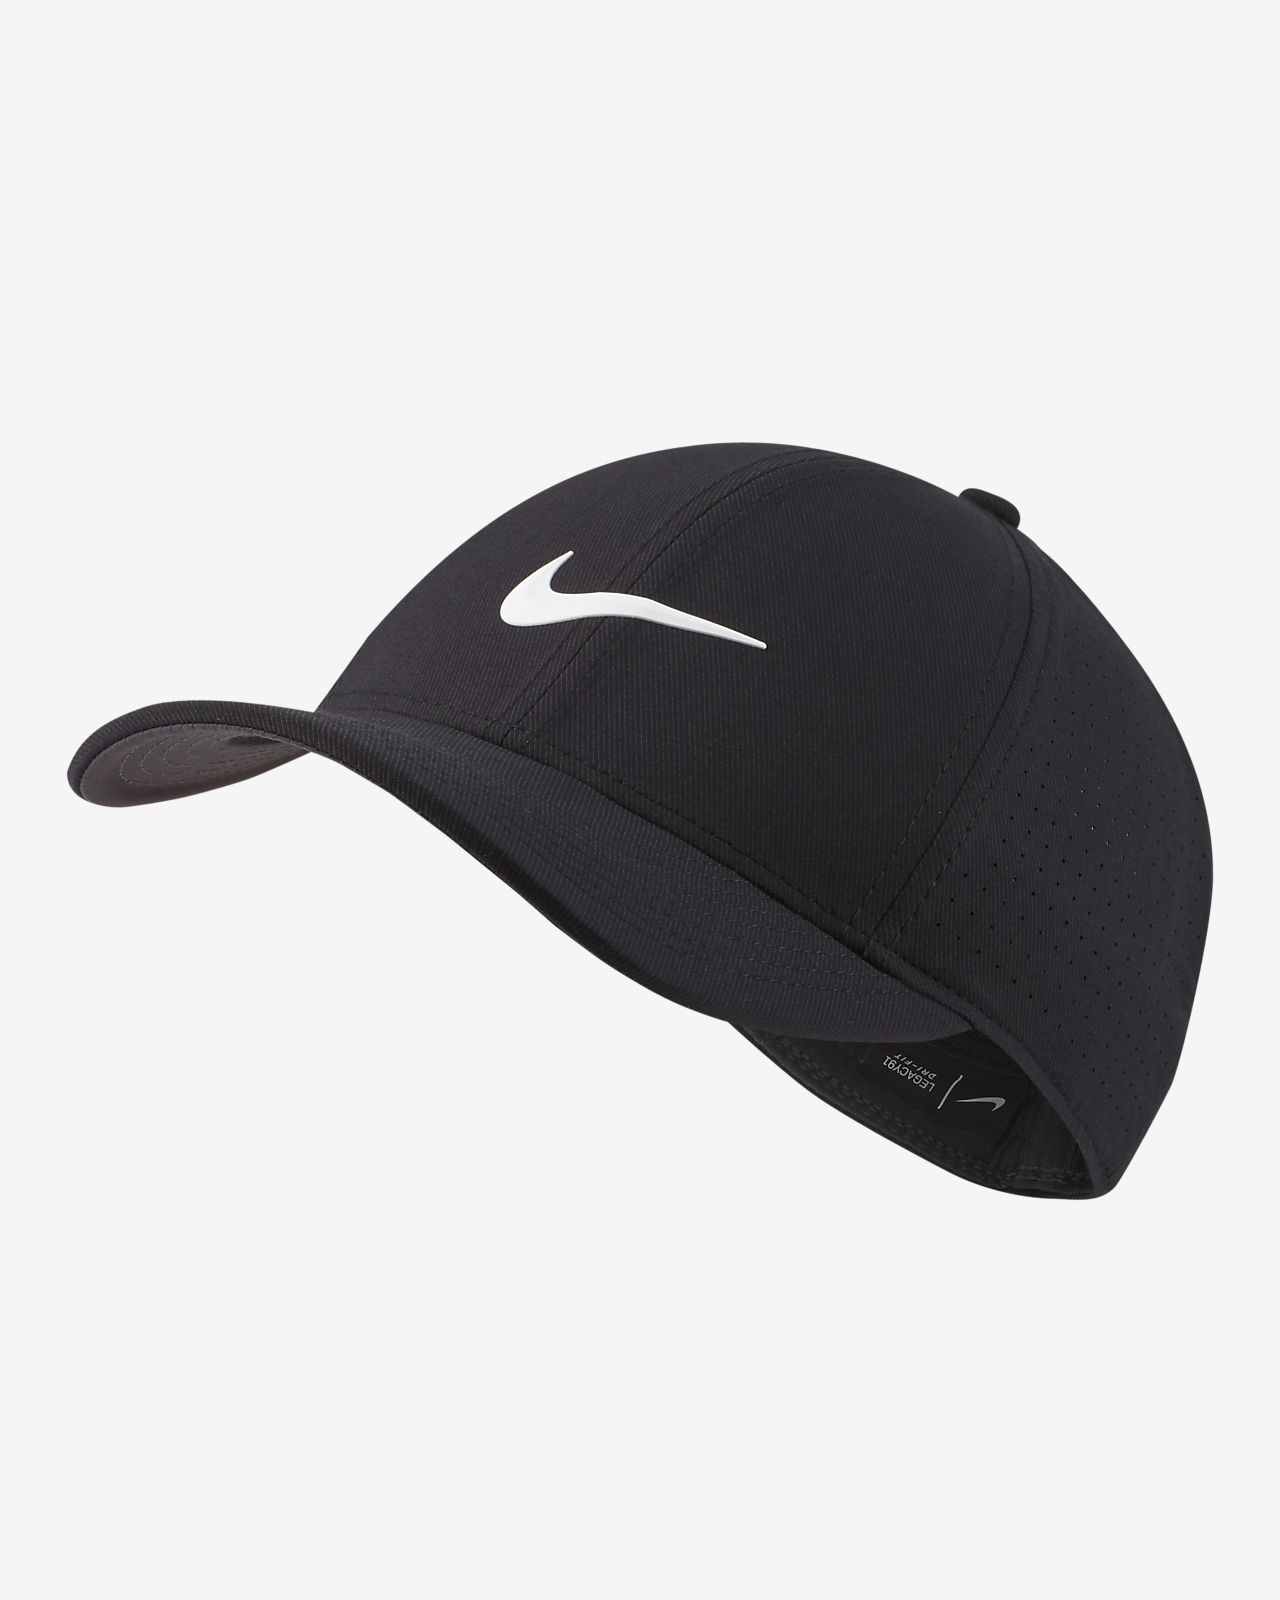 Nike AeroBill Legacy 91 Fitted Golf Hat 3ad5aefede2